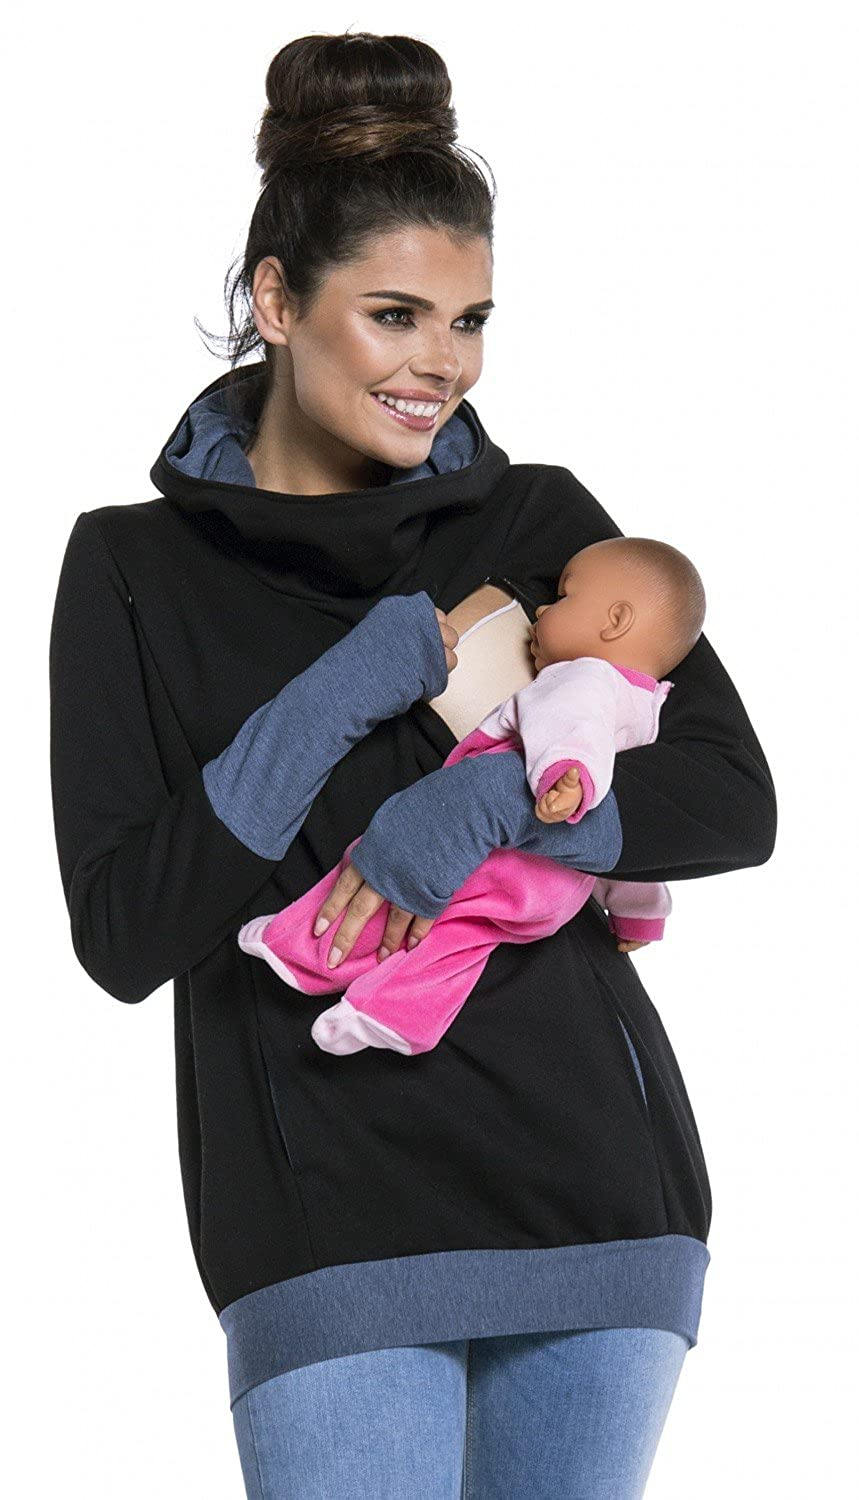 Zeta Ville - Womens breastfeeding top sweatshirt hoodie - nursing panel - 330c nursing_top_330